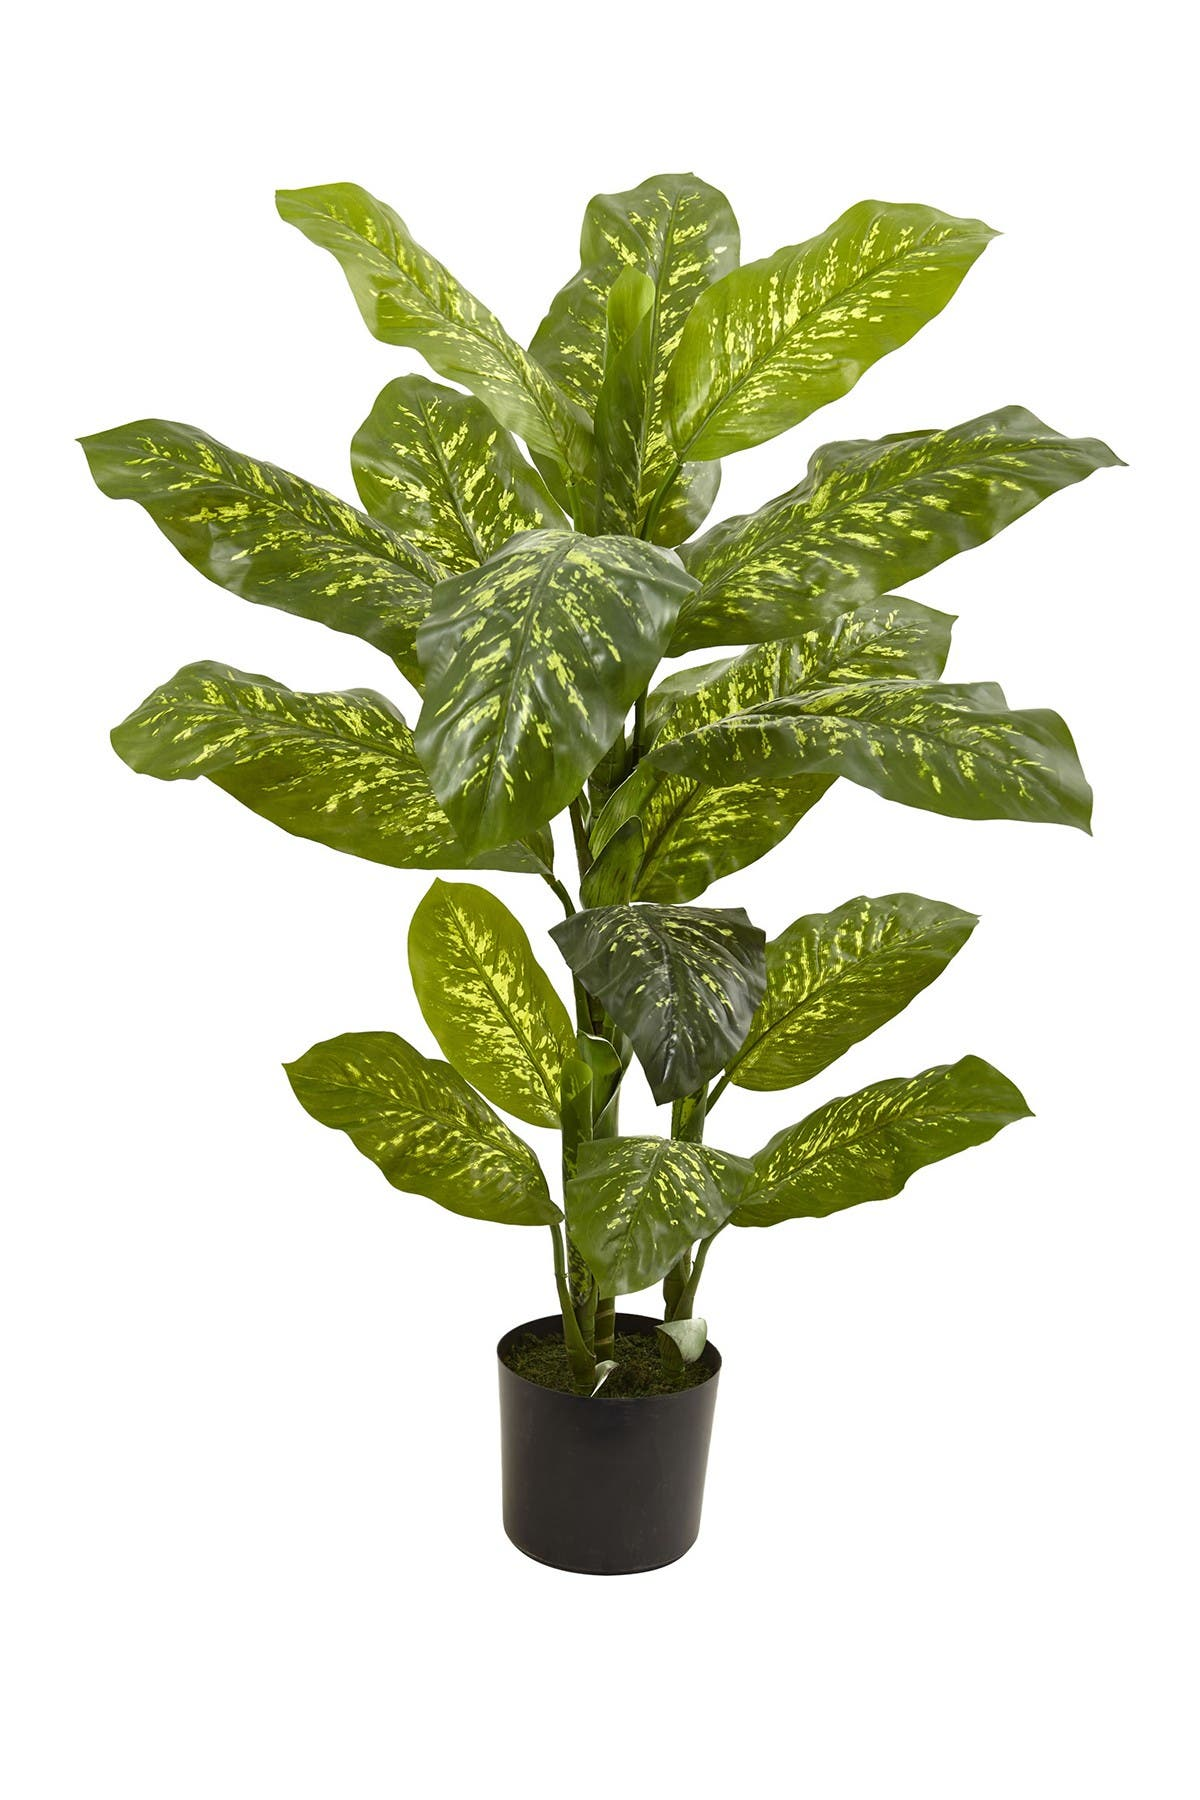 Image of NEARLY NATURAL 4ft. Dieffenbachia Plant - Real Touch